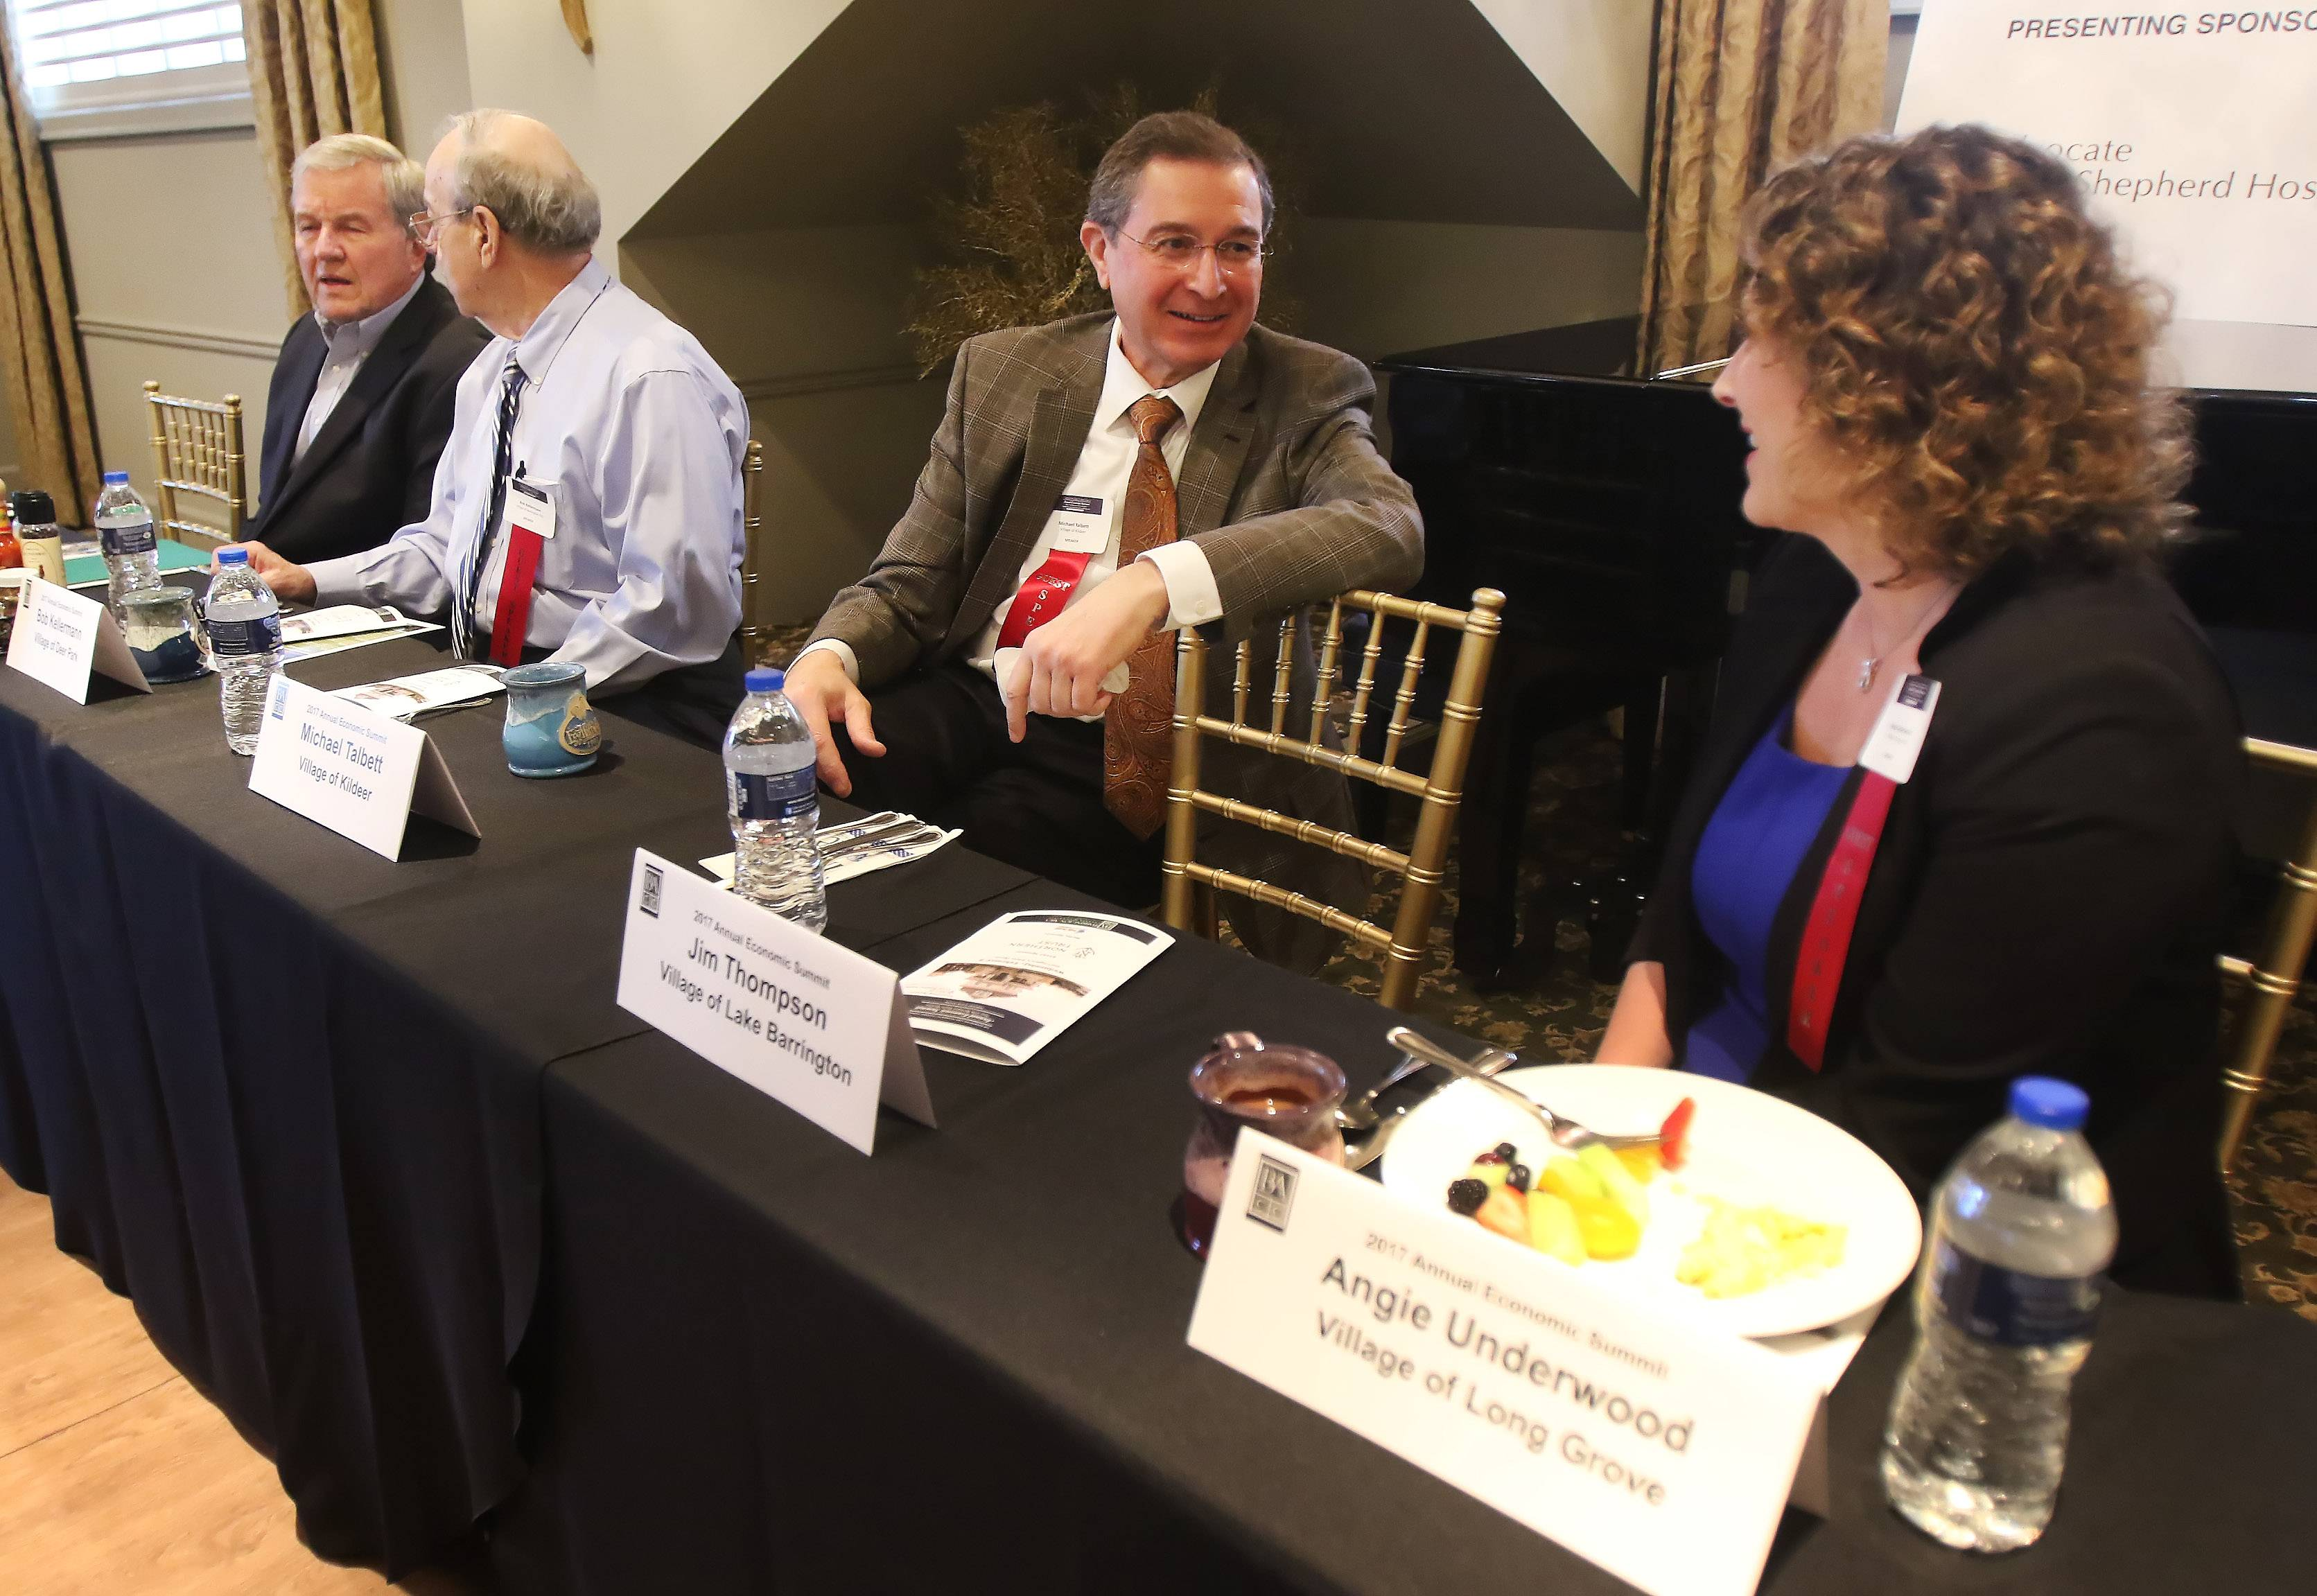 Long Grove Village President Angie Underwood, right, talks to Kildeer Village Administrator Michael Talbett with Deer Park Village President Bob Kellerman and Barrington Hills representative Dan Wolfgram to the left during the 2017 Annual Economic Summit by the Barrington Area Chamber of Commerce at Barrington's White House on Wednesday.